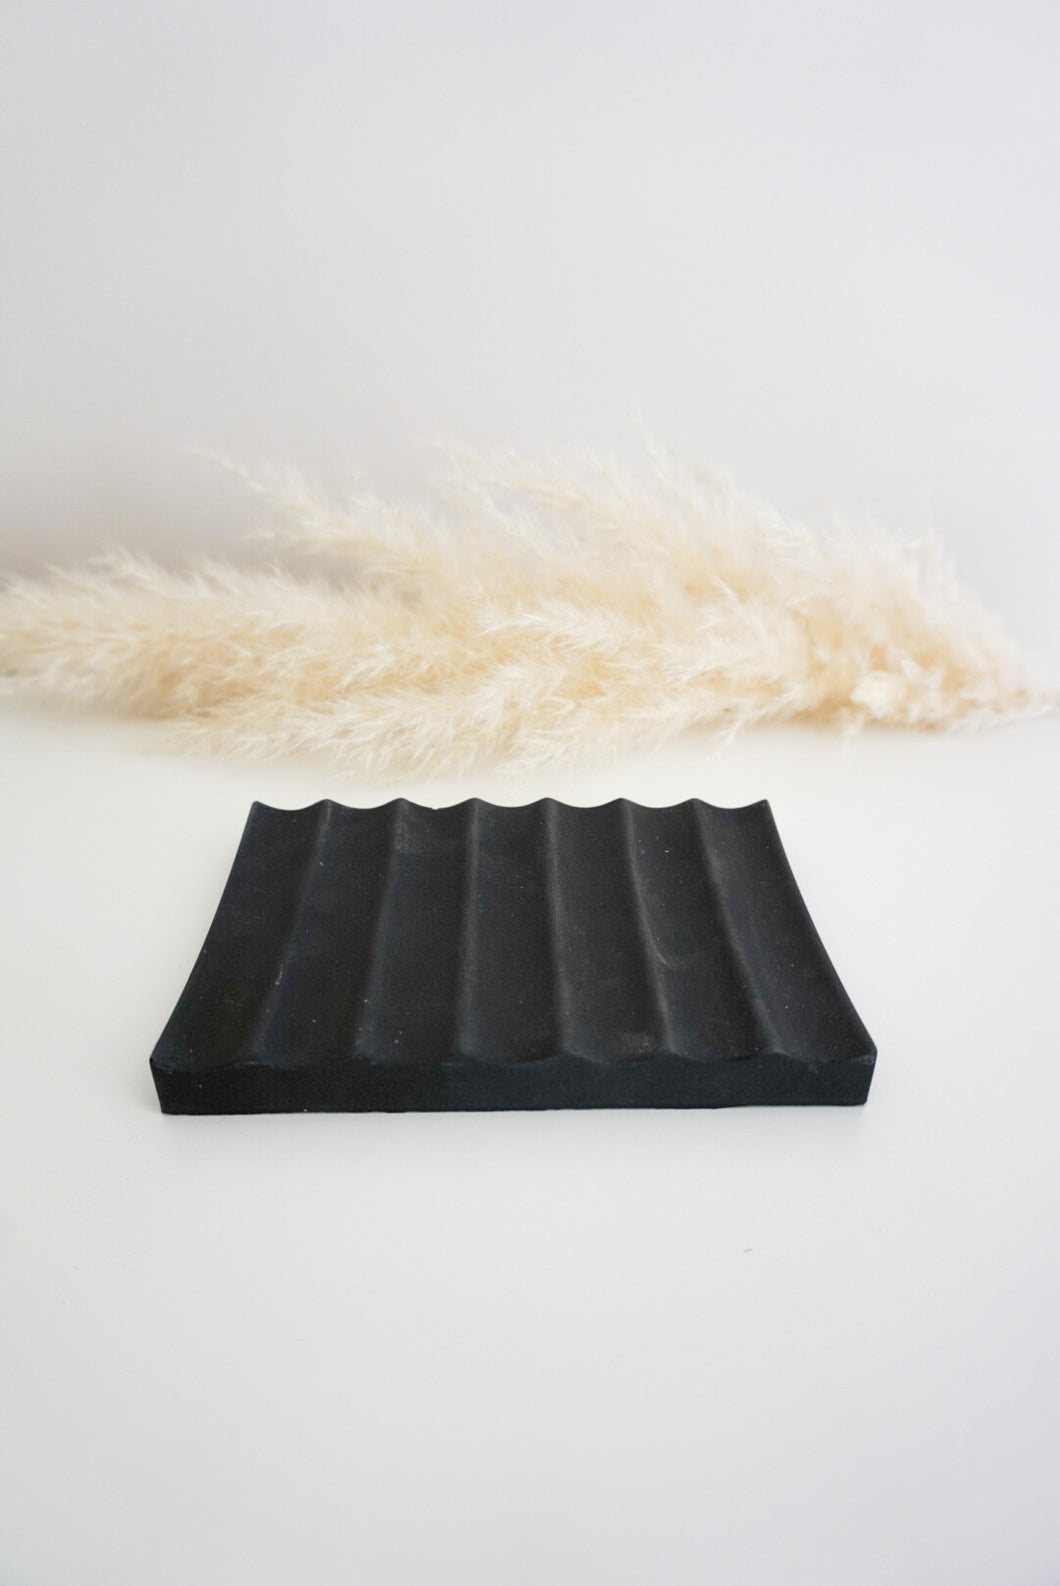 Soap Dish - Black